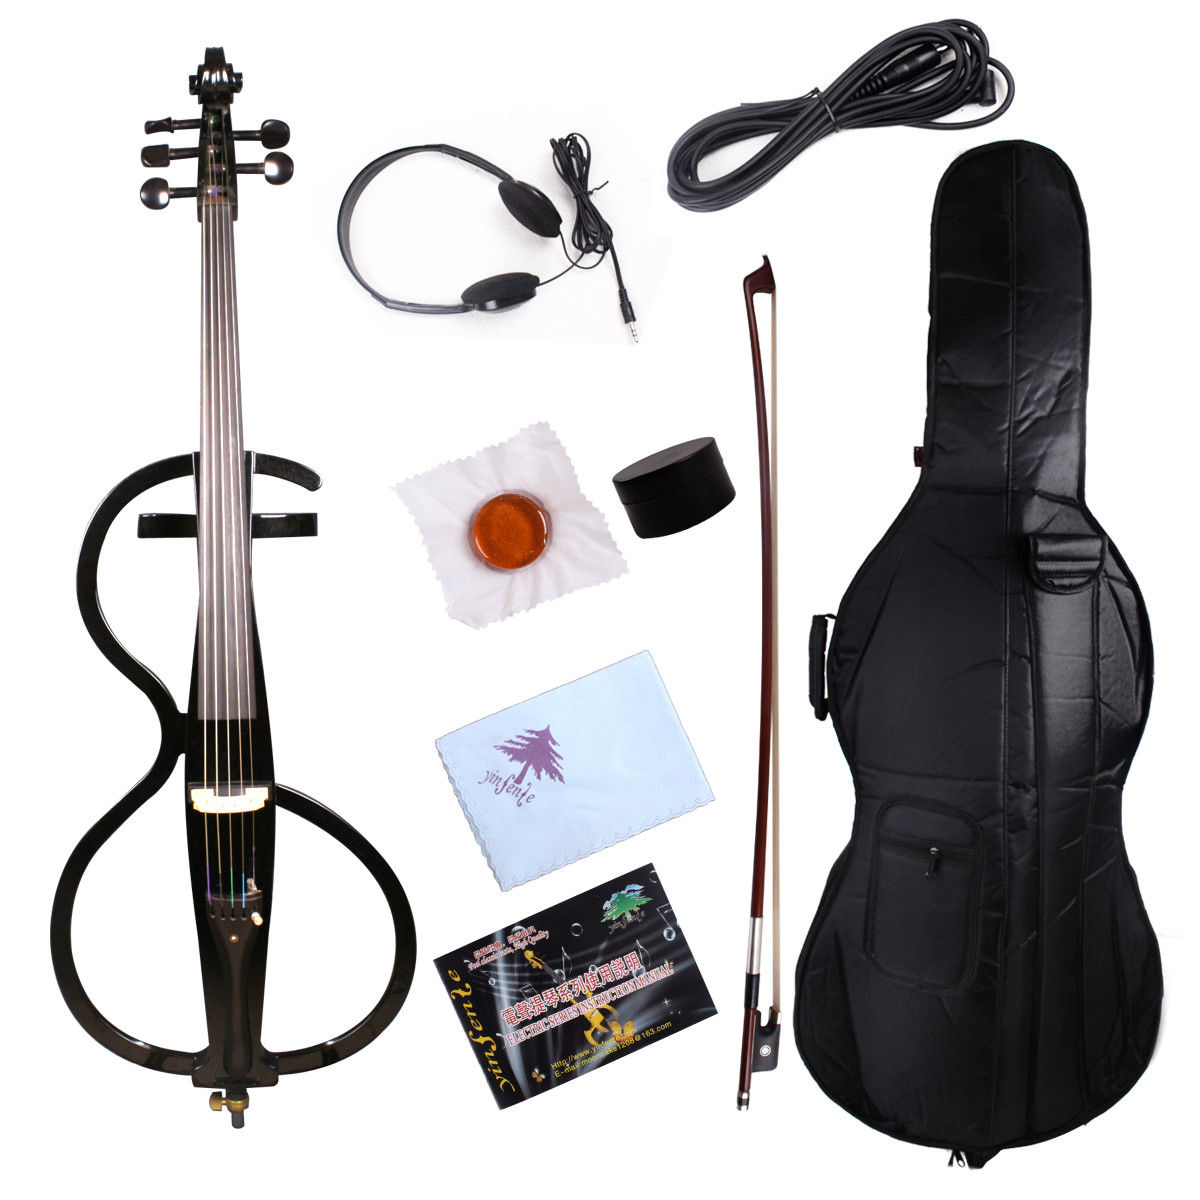 Yinfente 5 String Electric Cello 4/4 Black Cello Solid wood Sweet Sound bag Bow cello electrico